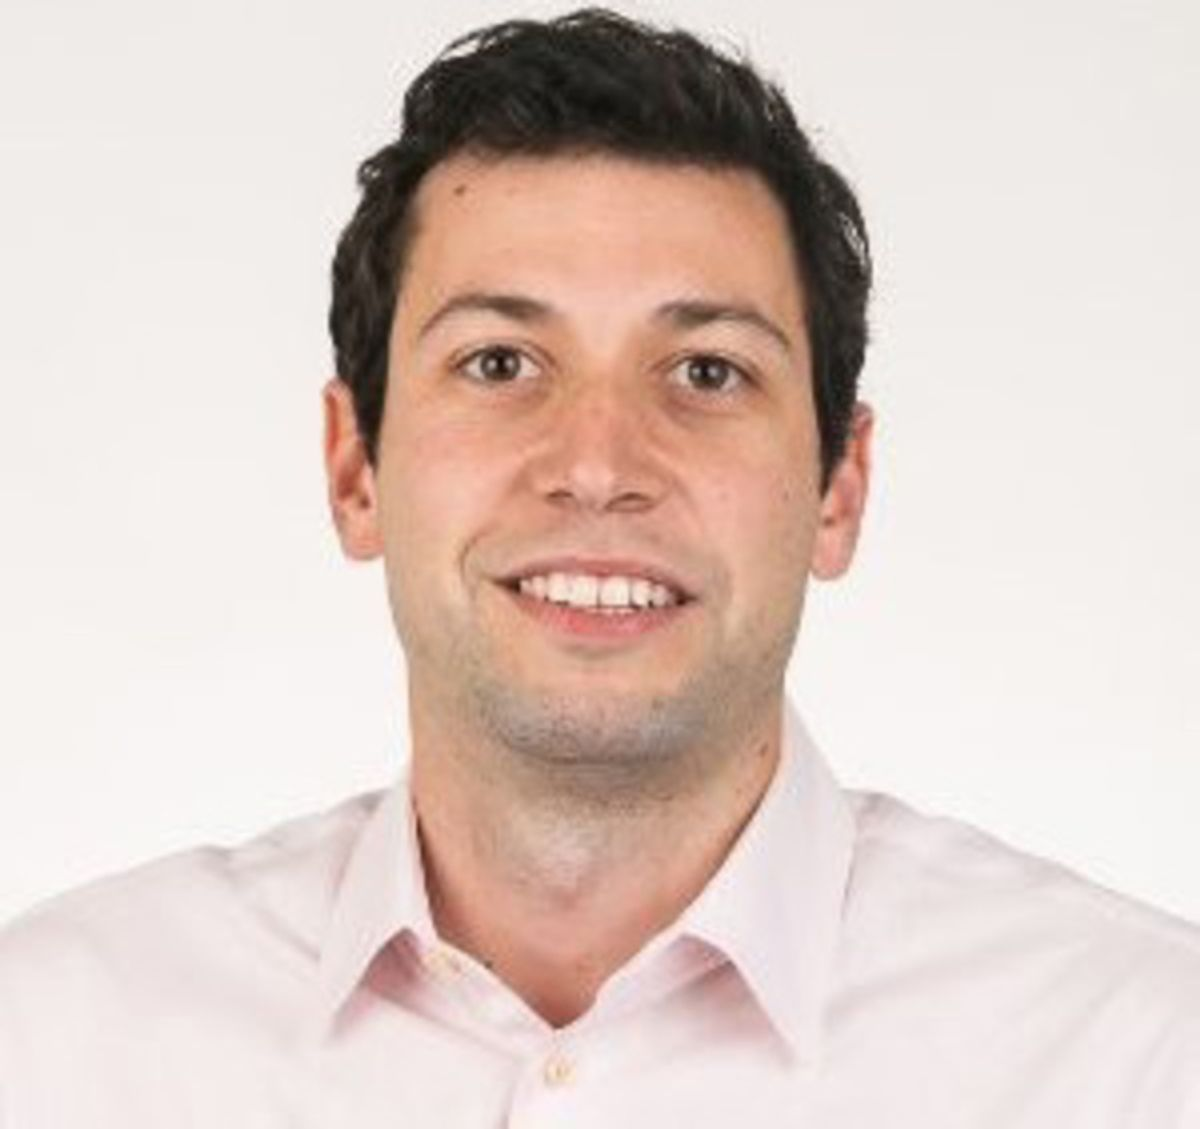 Photo of Lucian Iancovici, General Partner at dRx Capital